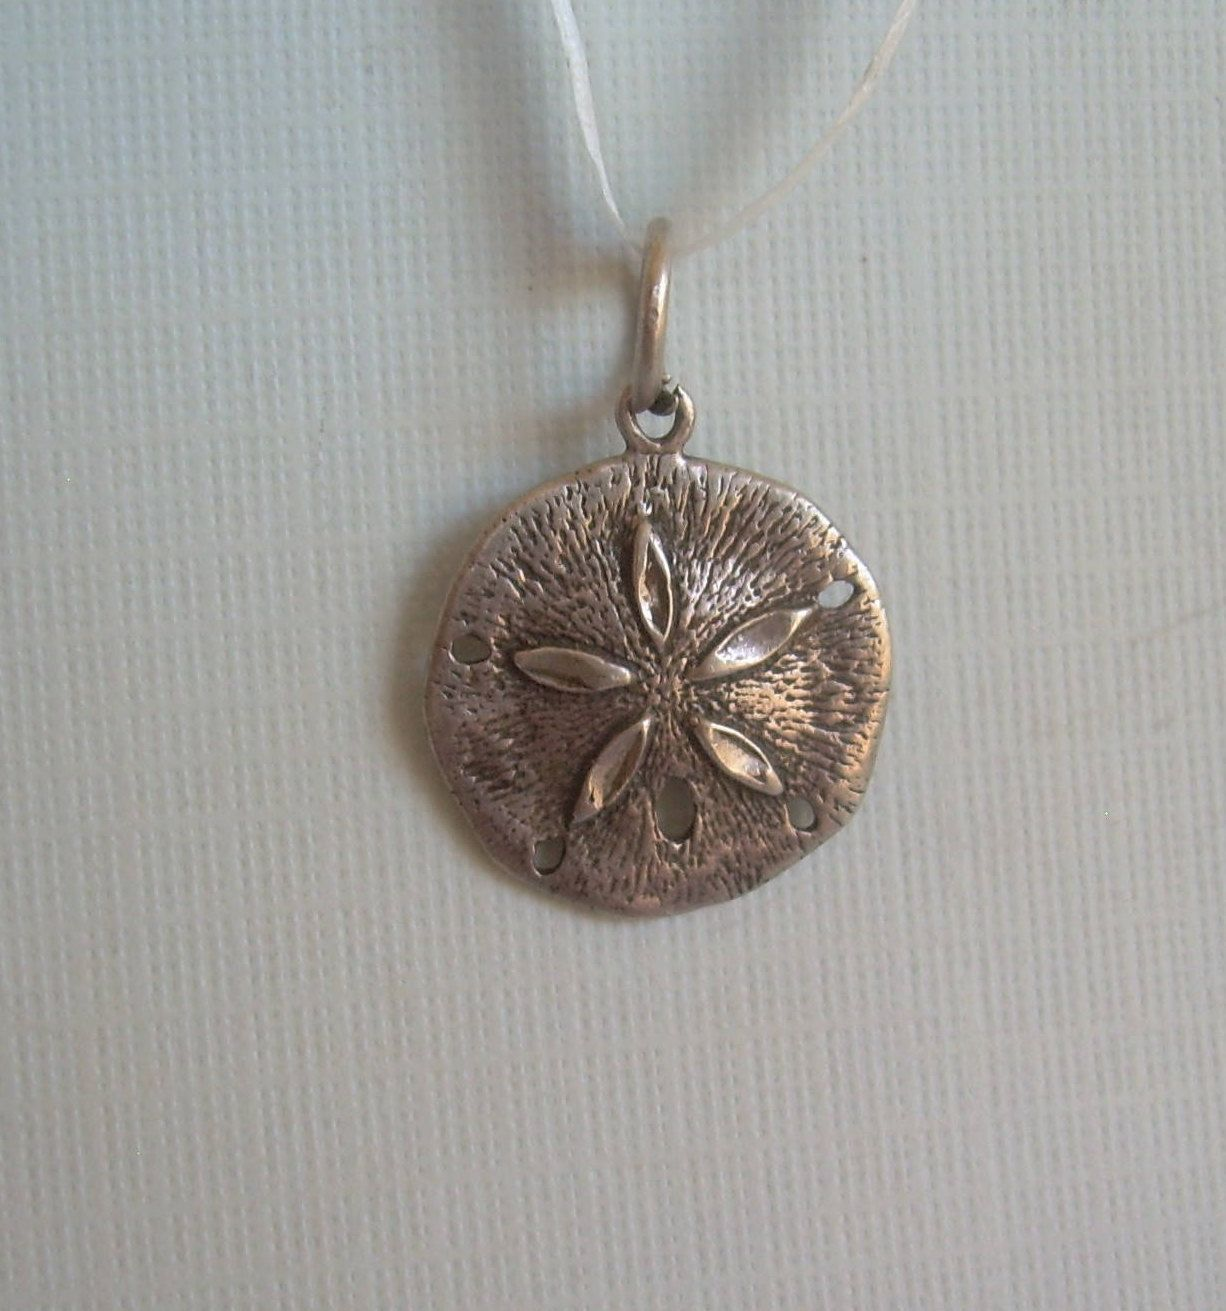 9abe745a1c60 Small Sand Dollar Pendant Charm-Vintage Solid Sterling Silver-9P  Hallmark-Classic Nautical Reef Star Sealife Sea Animal Beach Jewelry-00687  by ...